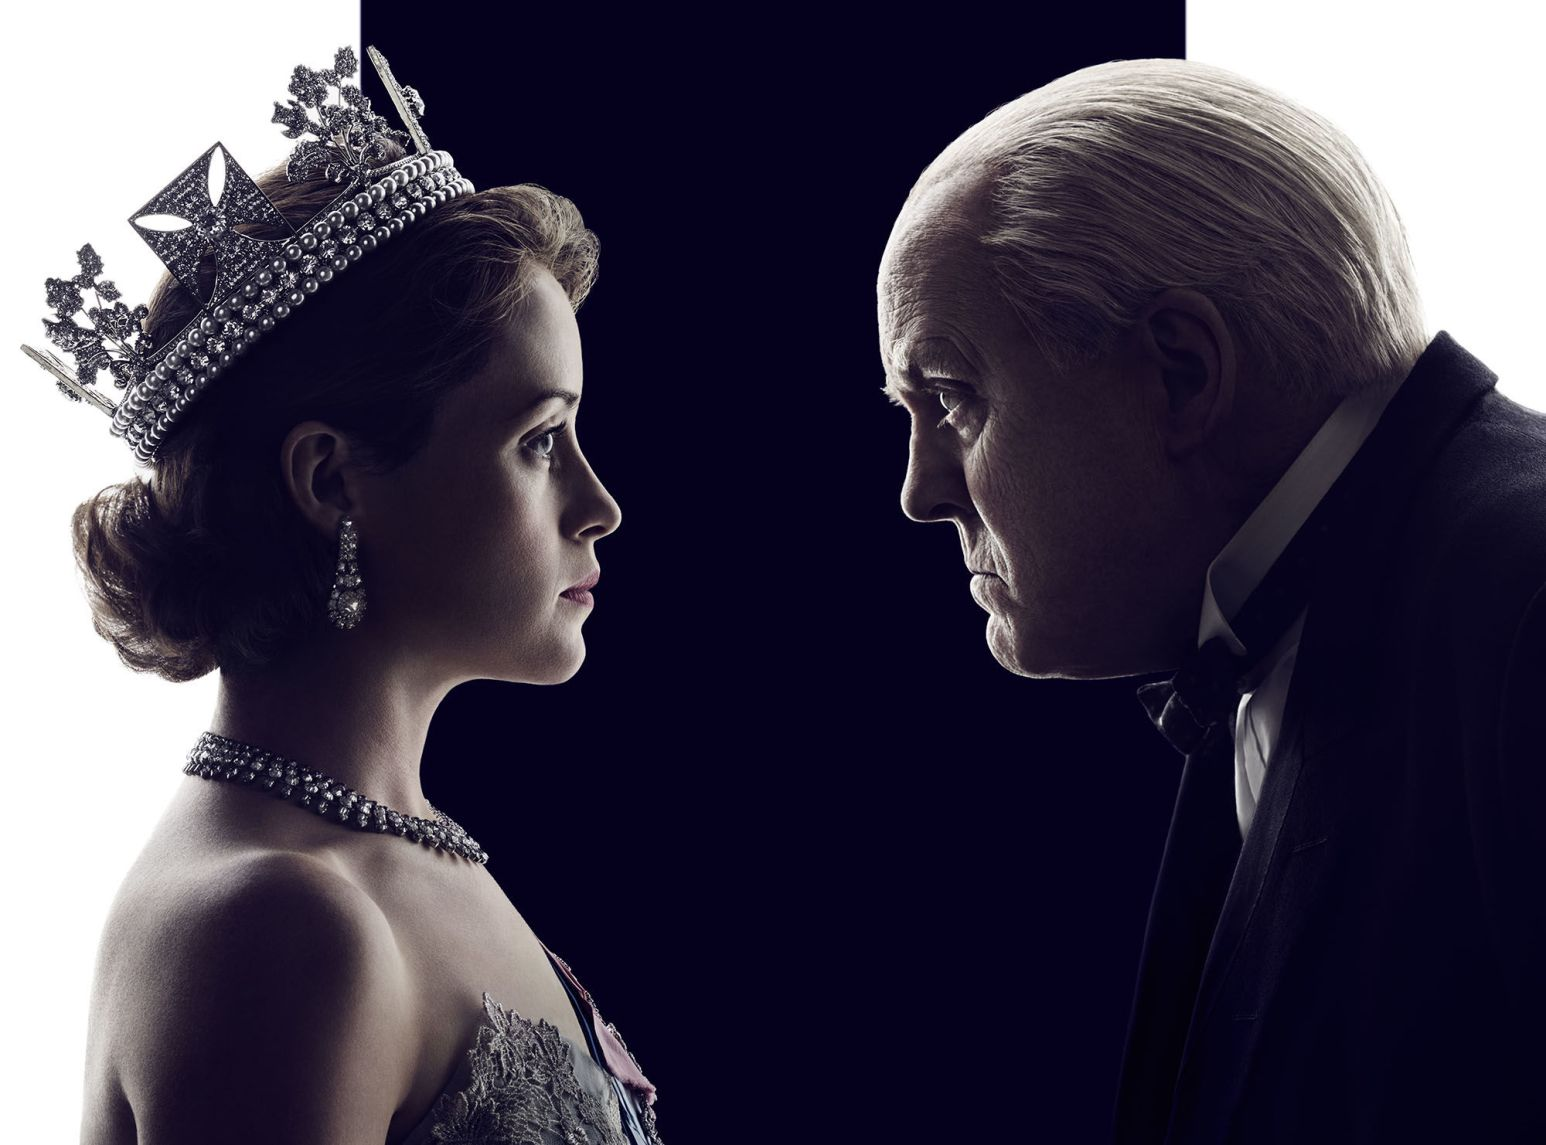 The Crown Confrontation